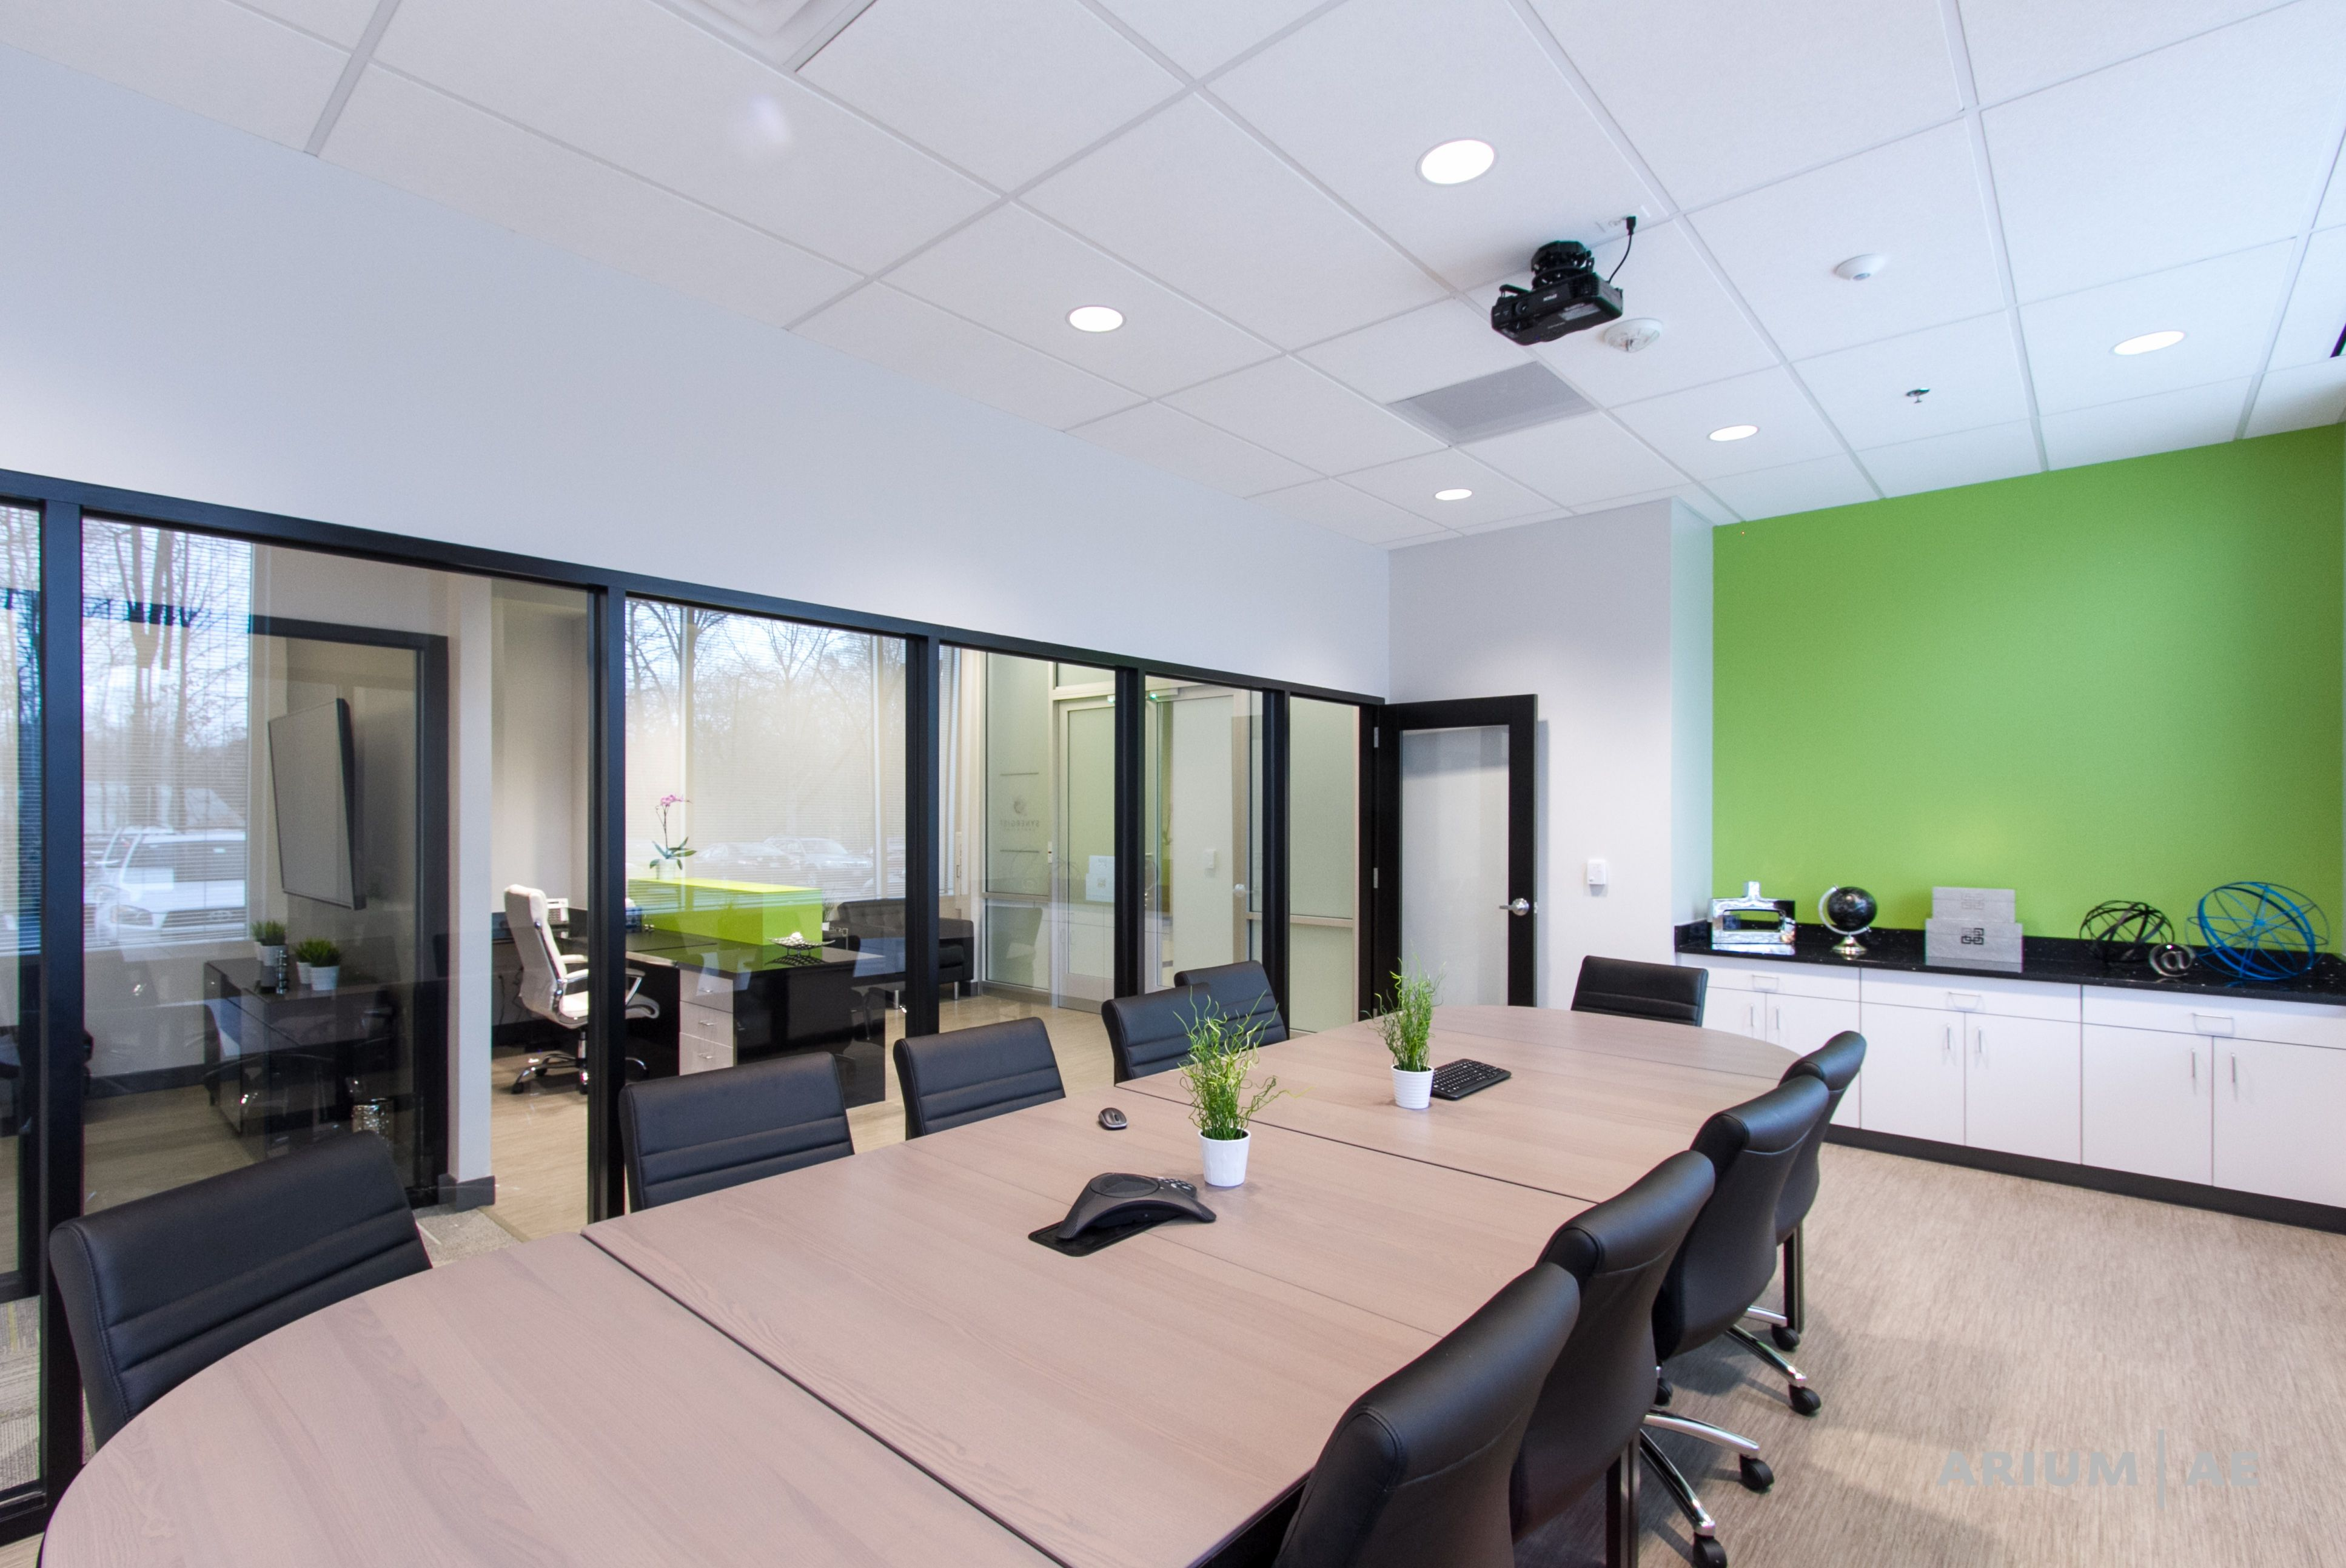 Green Accent Wall Conference Room With Green Accent Wall Built In Millwork